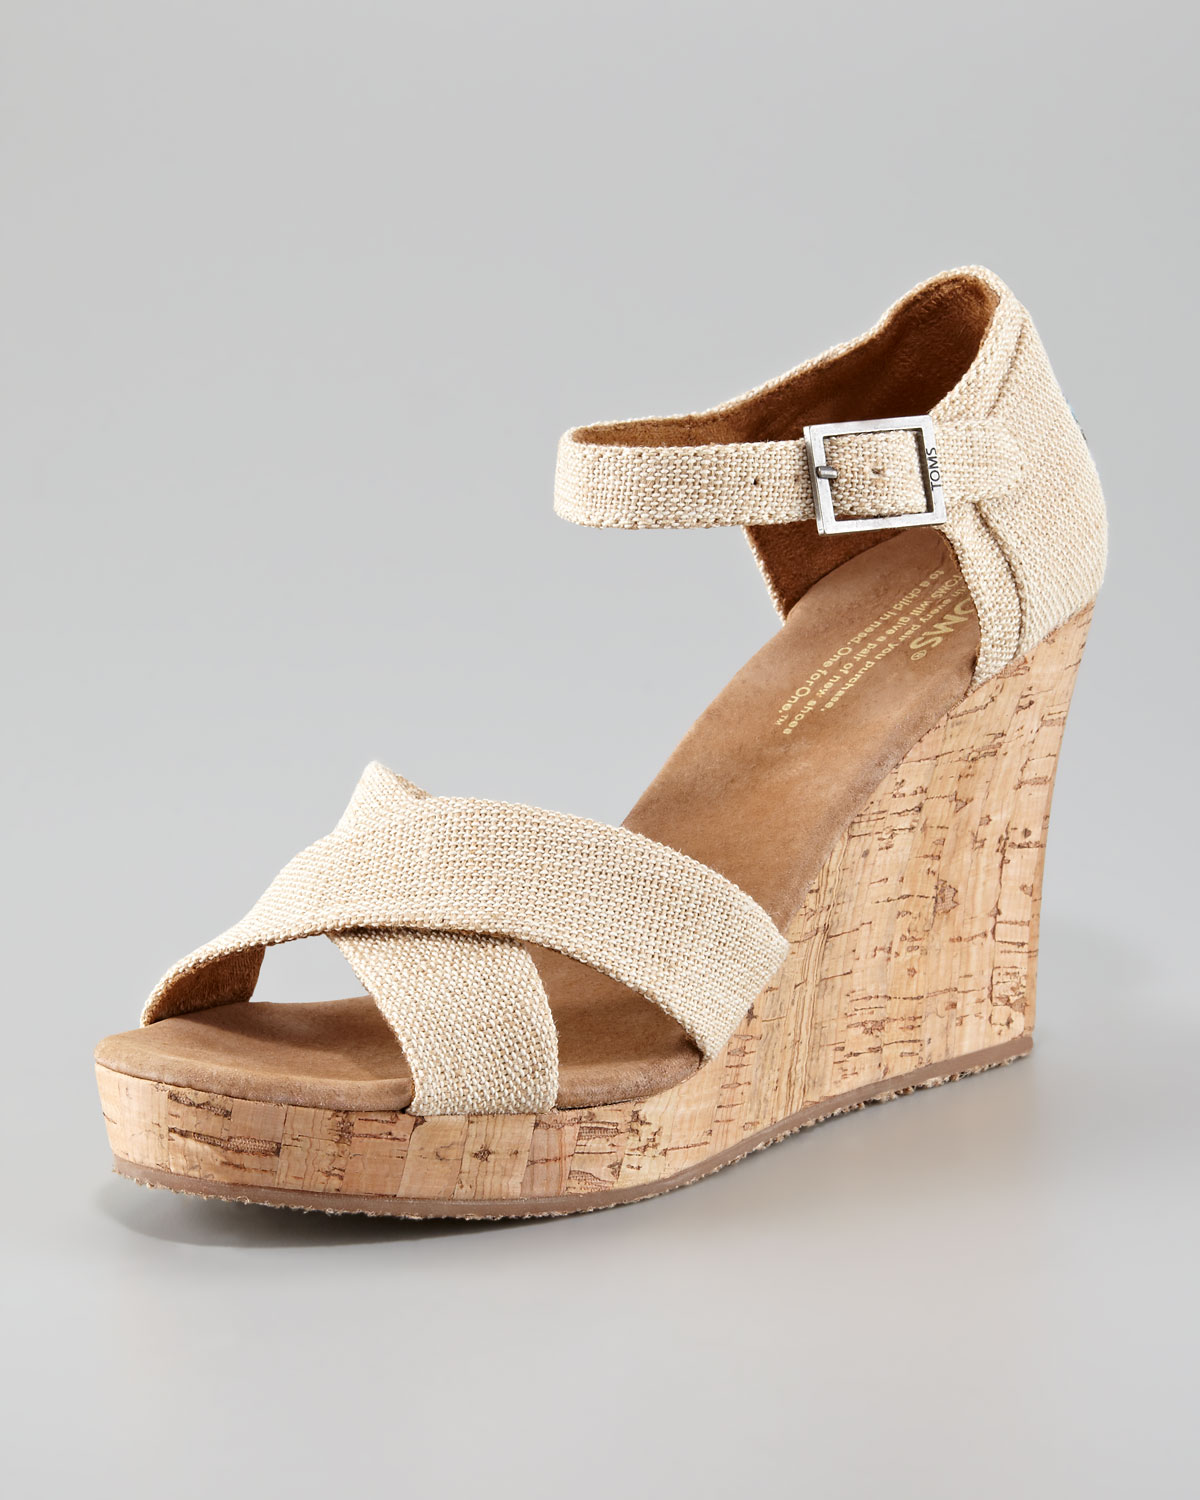 Wide Width Wedge Sandals. No need to teeter and totter on heels! Wedge this way instead! Get the extra inches you want from a supportive design with our wide width wedges! Looking for the perfect shoes to match your new cute cocktail dress? Strap on a pink mini wedge for a walk along the boardwalk or a black beaded wedge for an elegant evening.